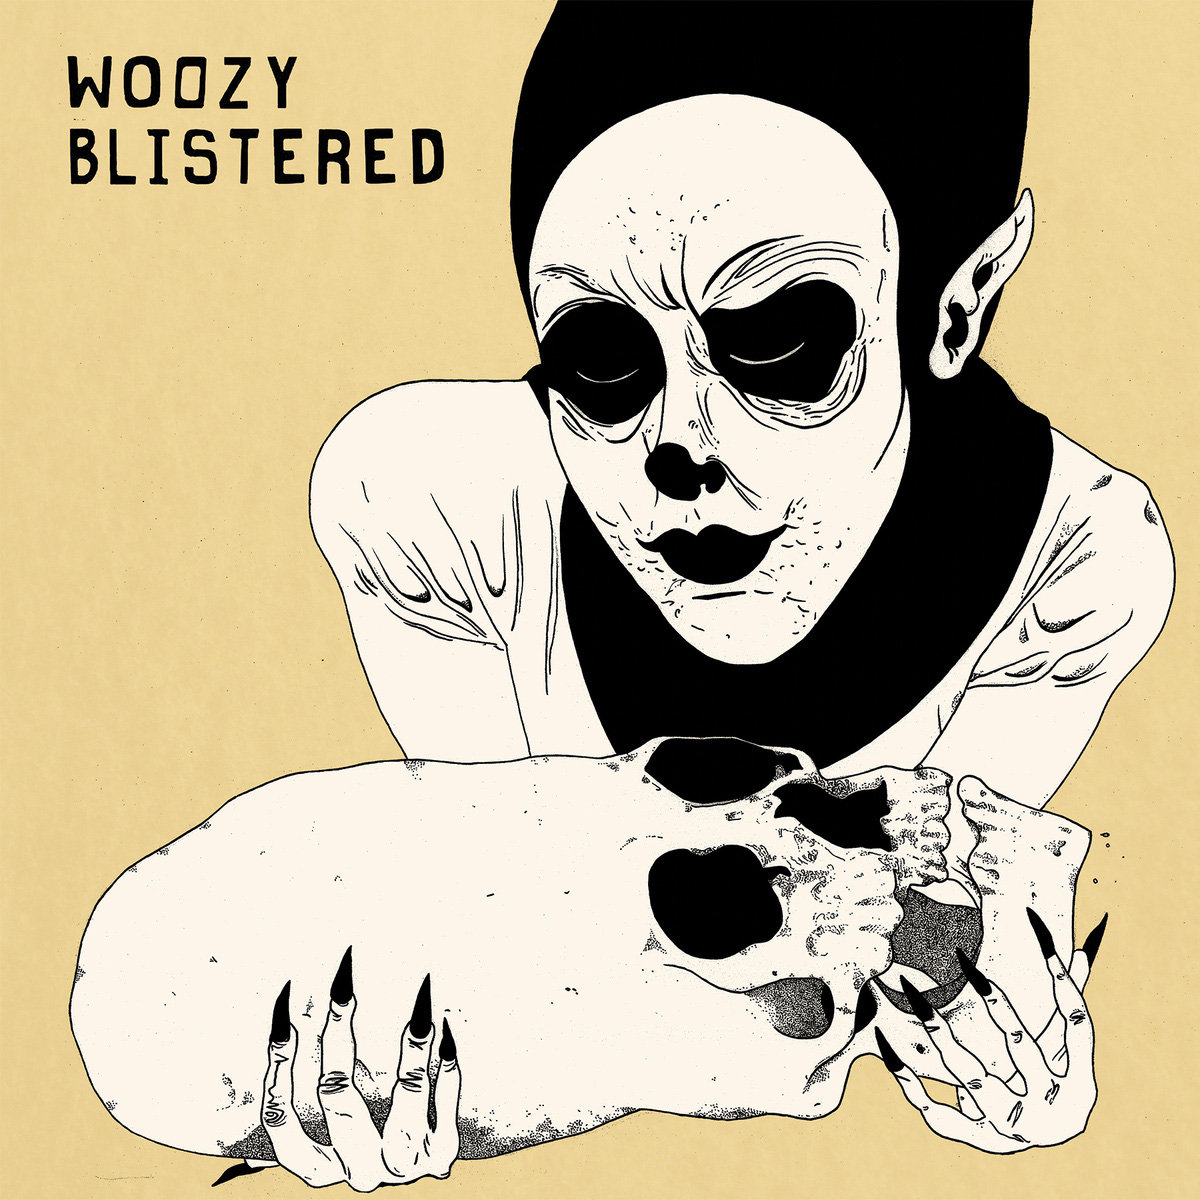 Woozy Blistered